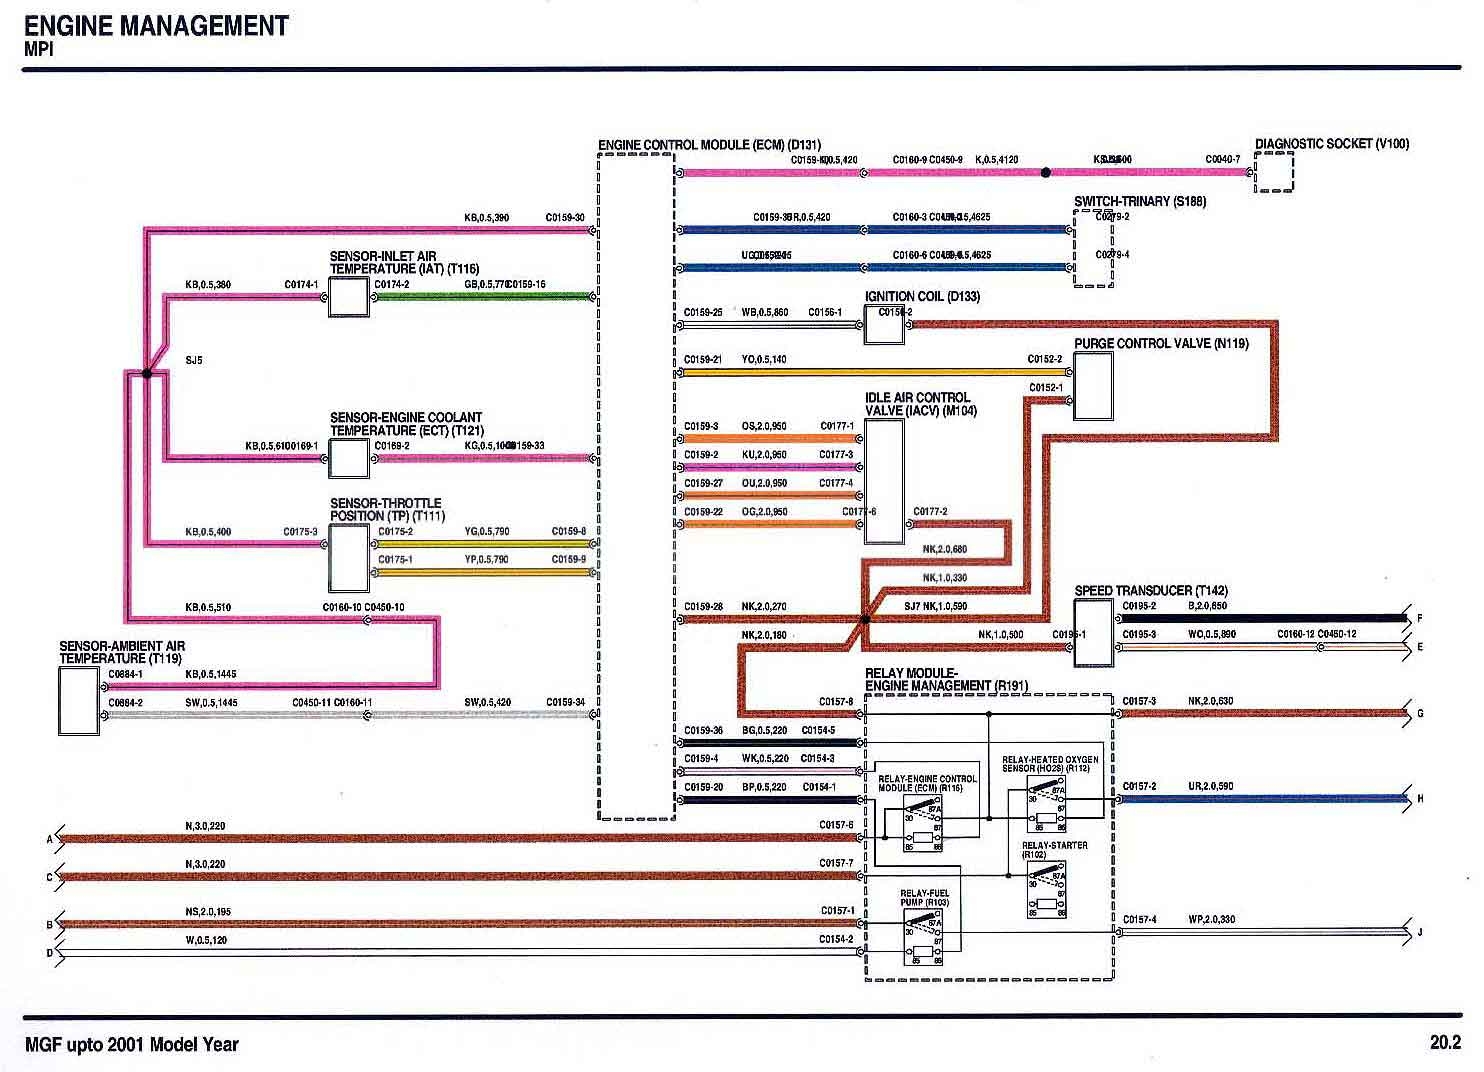 Electrical Circuits Uk Mains Wiring Diagram Engine Management Sheet 2